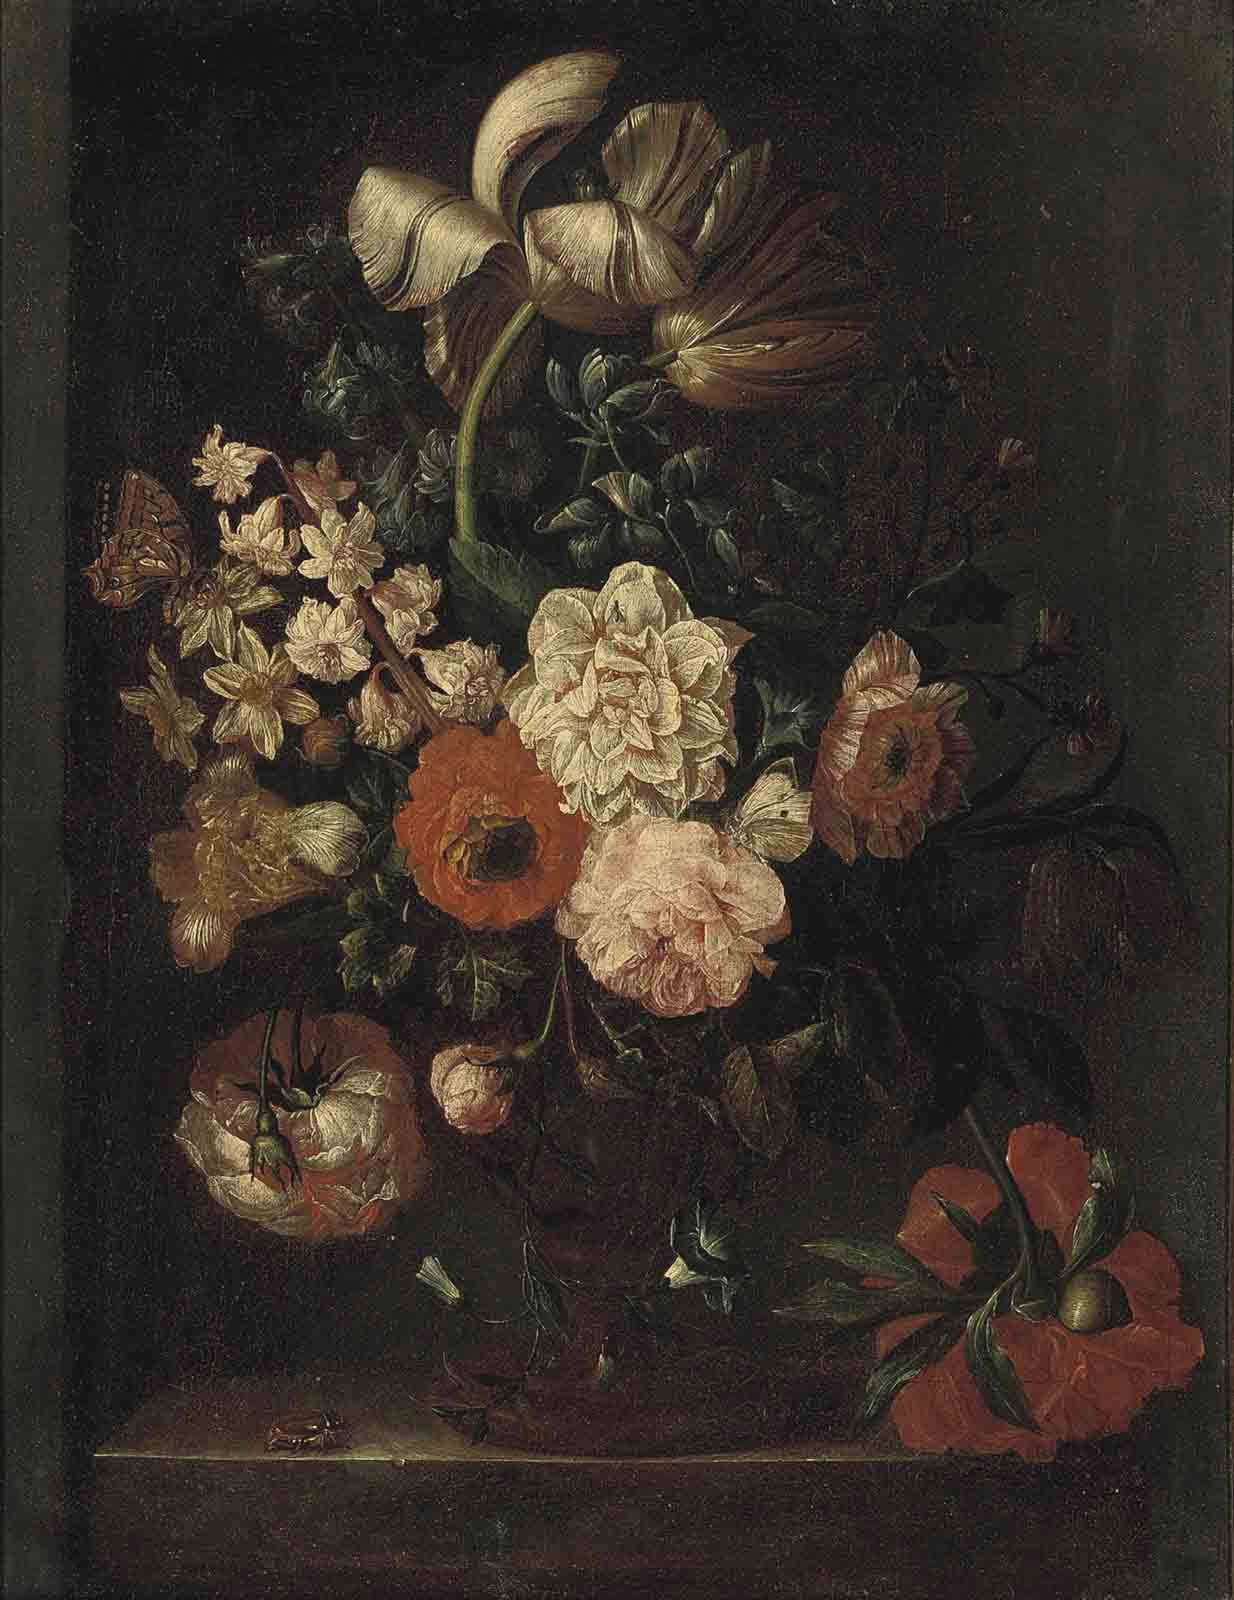 Roses, tulips and morning glory in an urn on a stone ledge, with a butterfly, a fly and a beetle